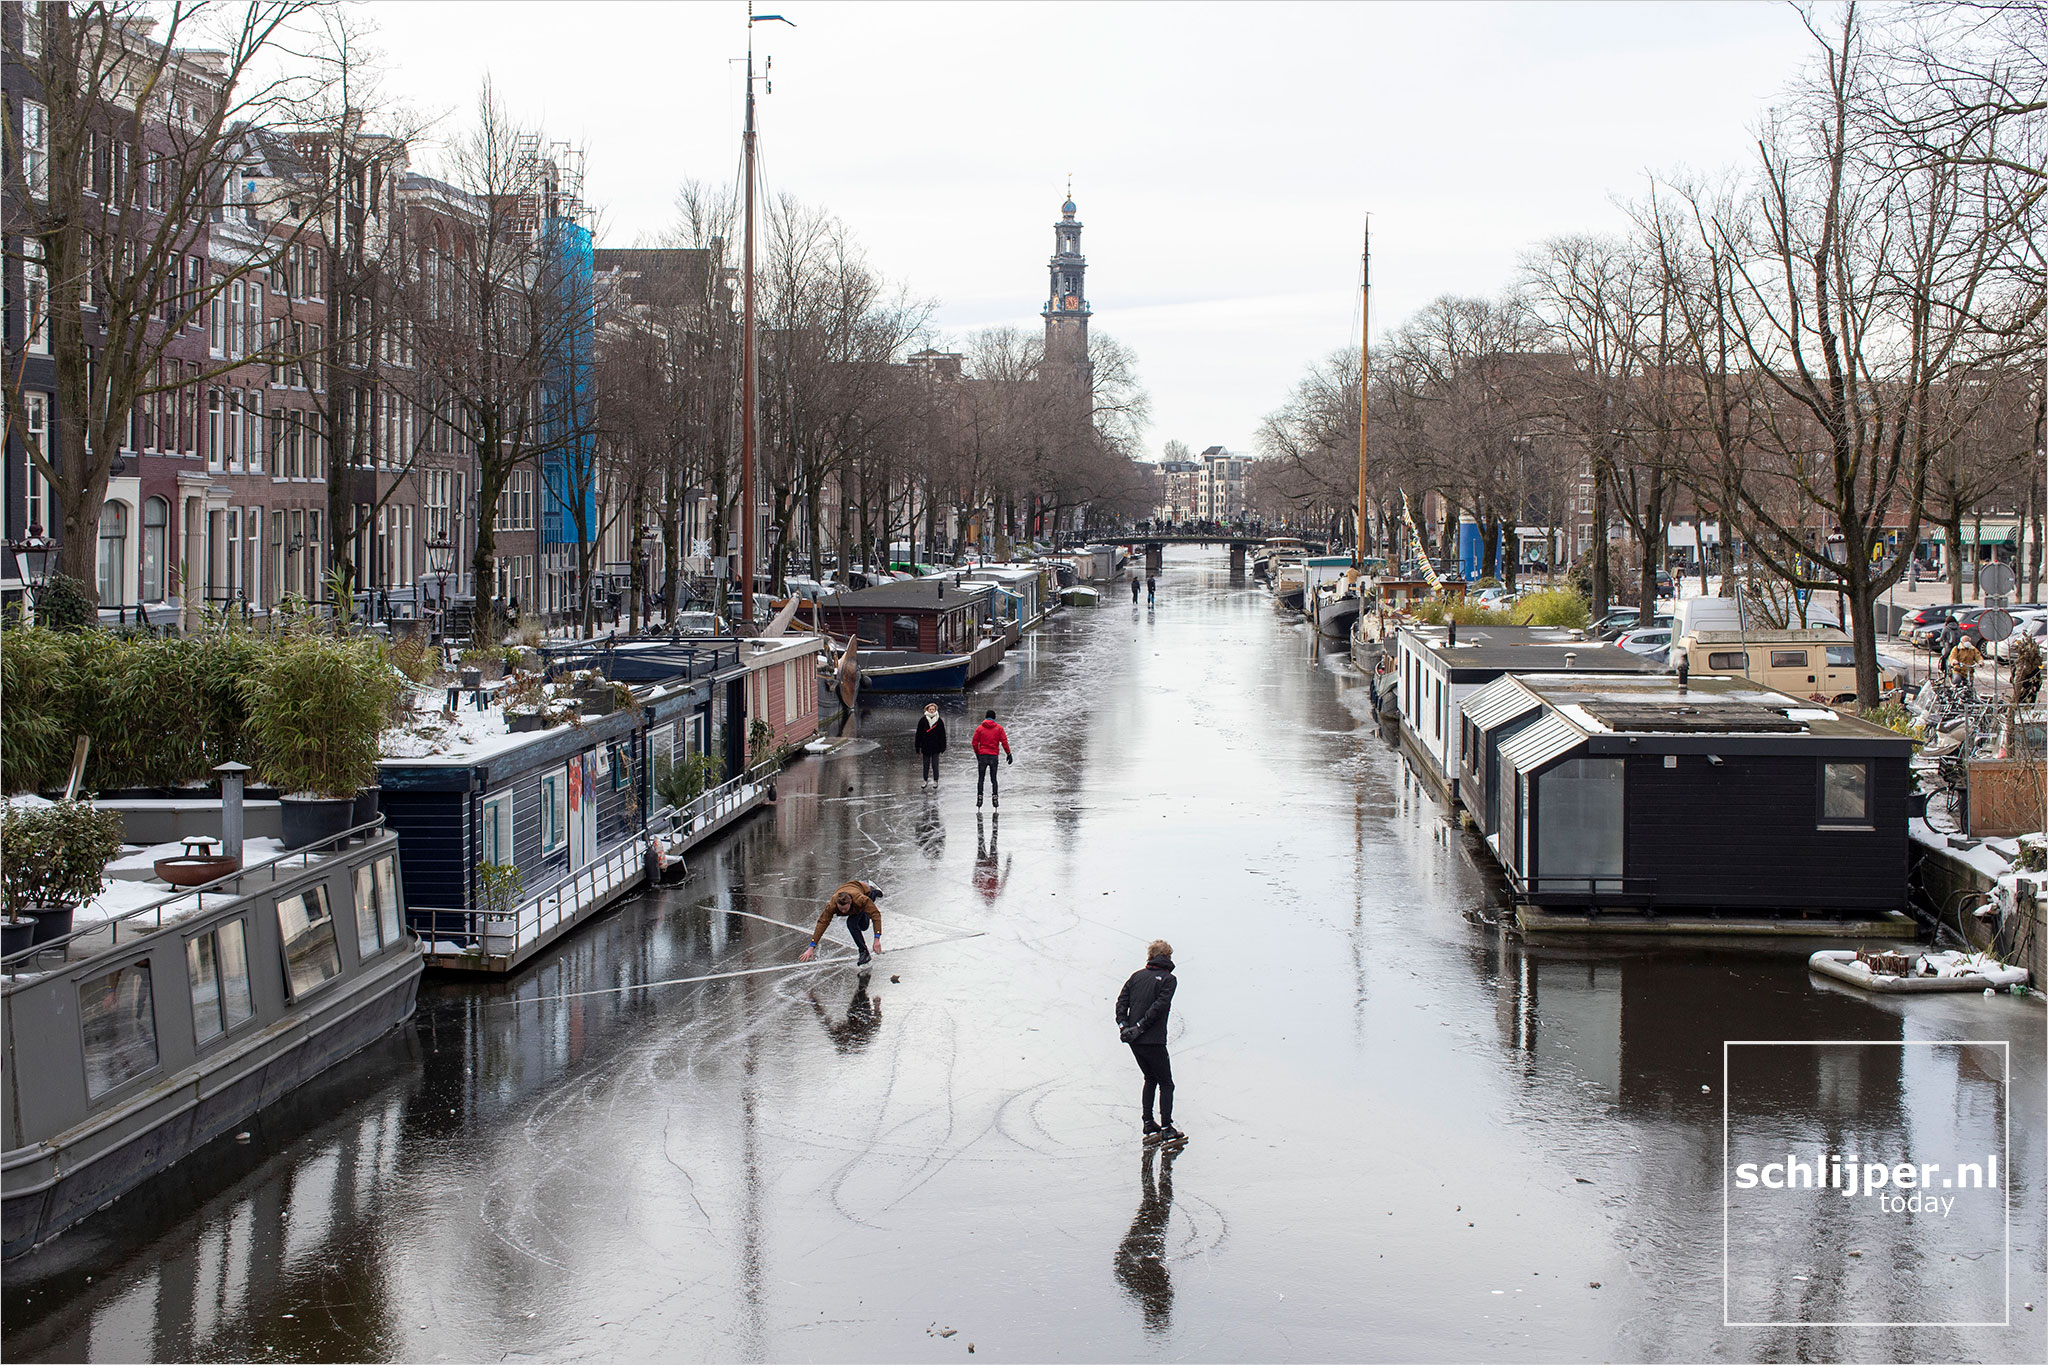 The Netherlands, Amsterdam, 14 februari 2021